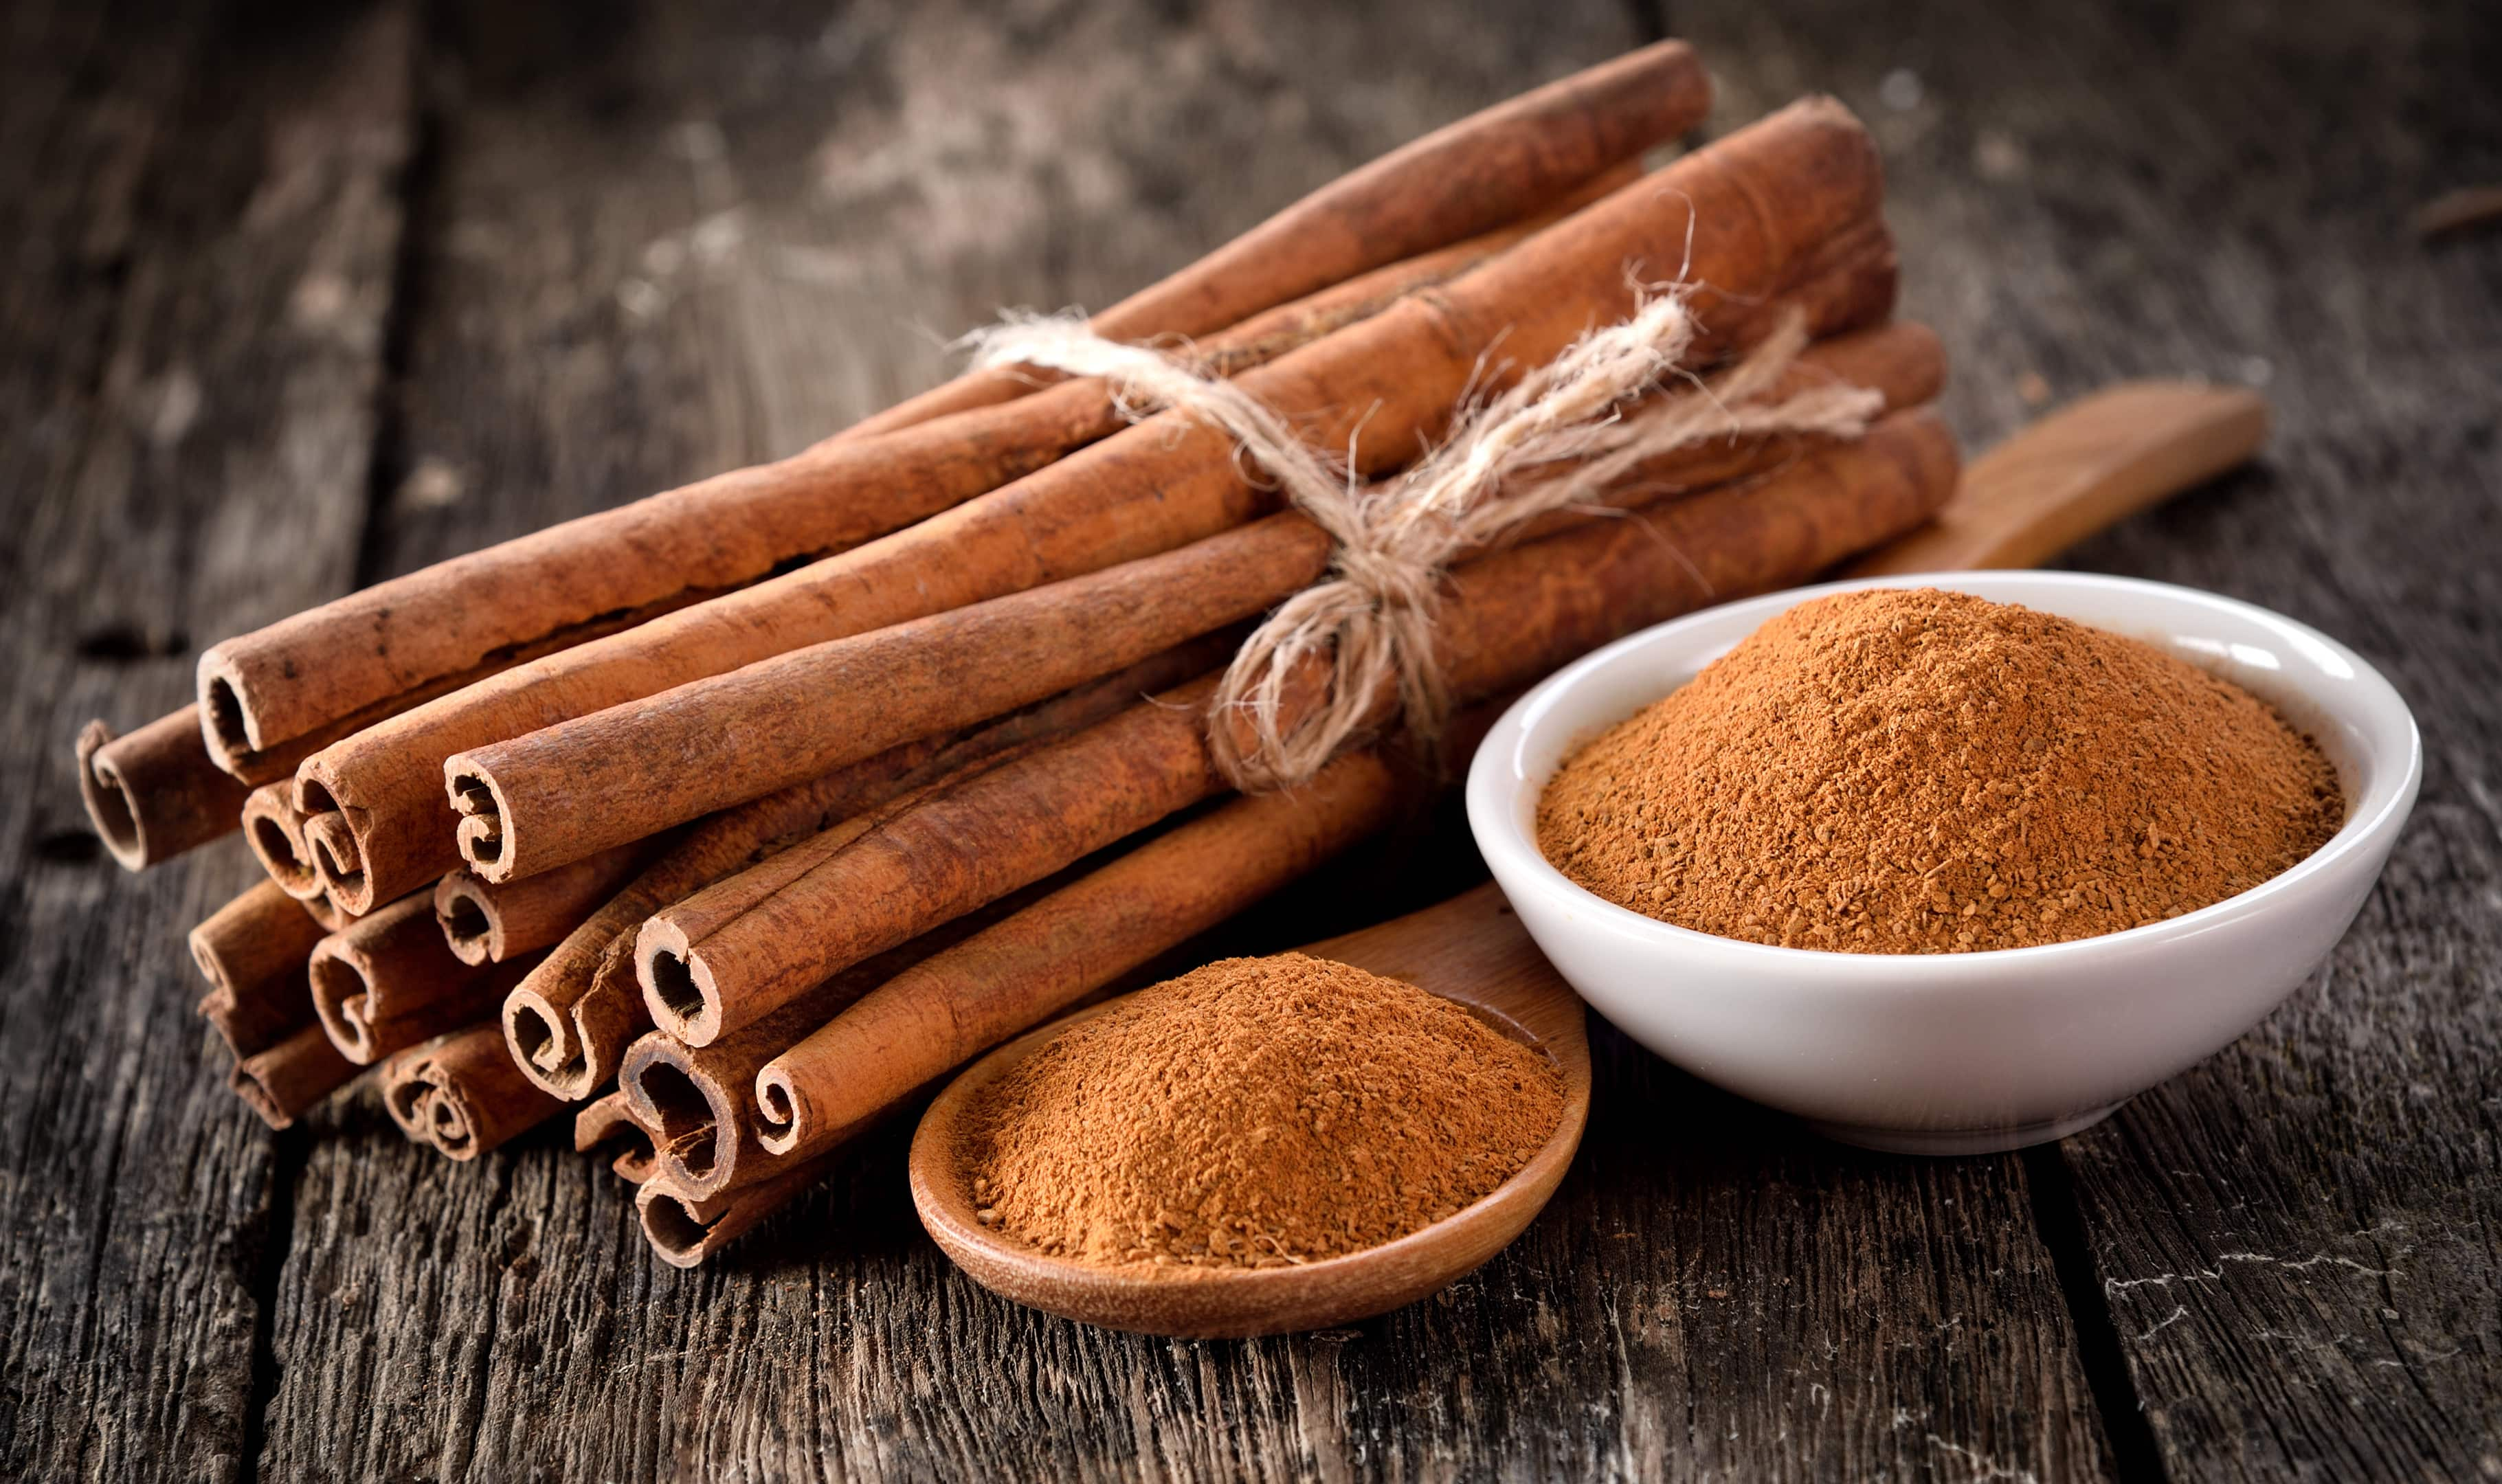 Cinnamon sticks and powder on table wooden